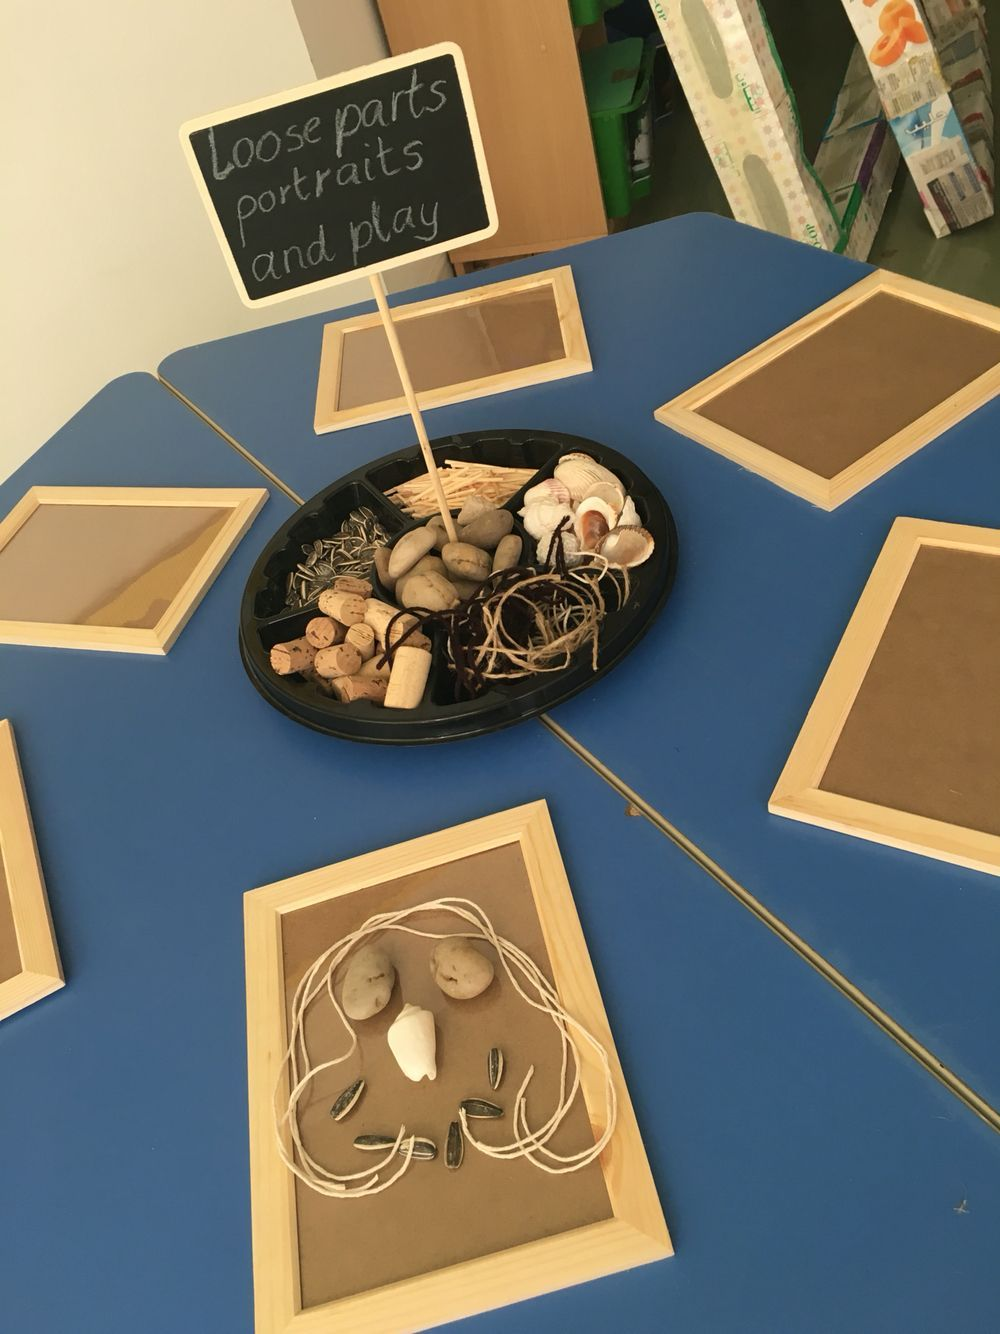 Kinder Garden: Loose Parts Play At The Tinkering Tables. My Early Years